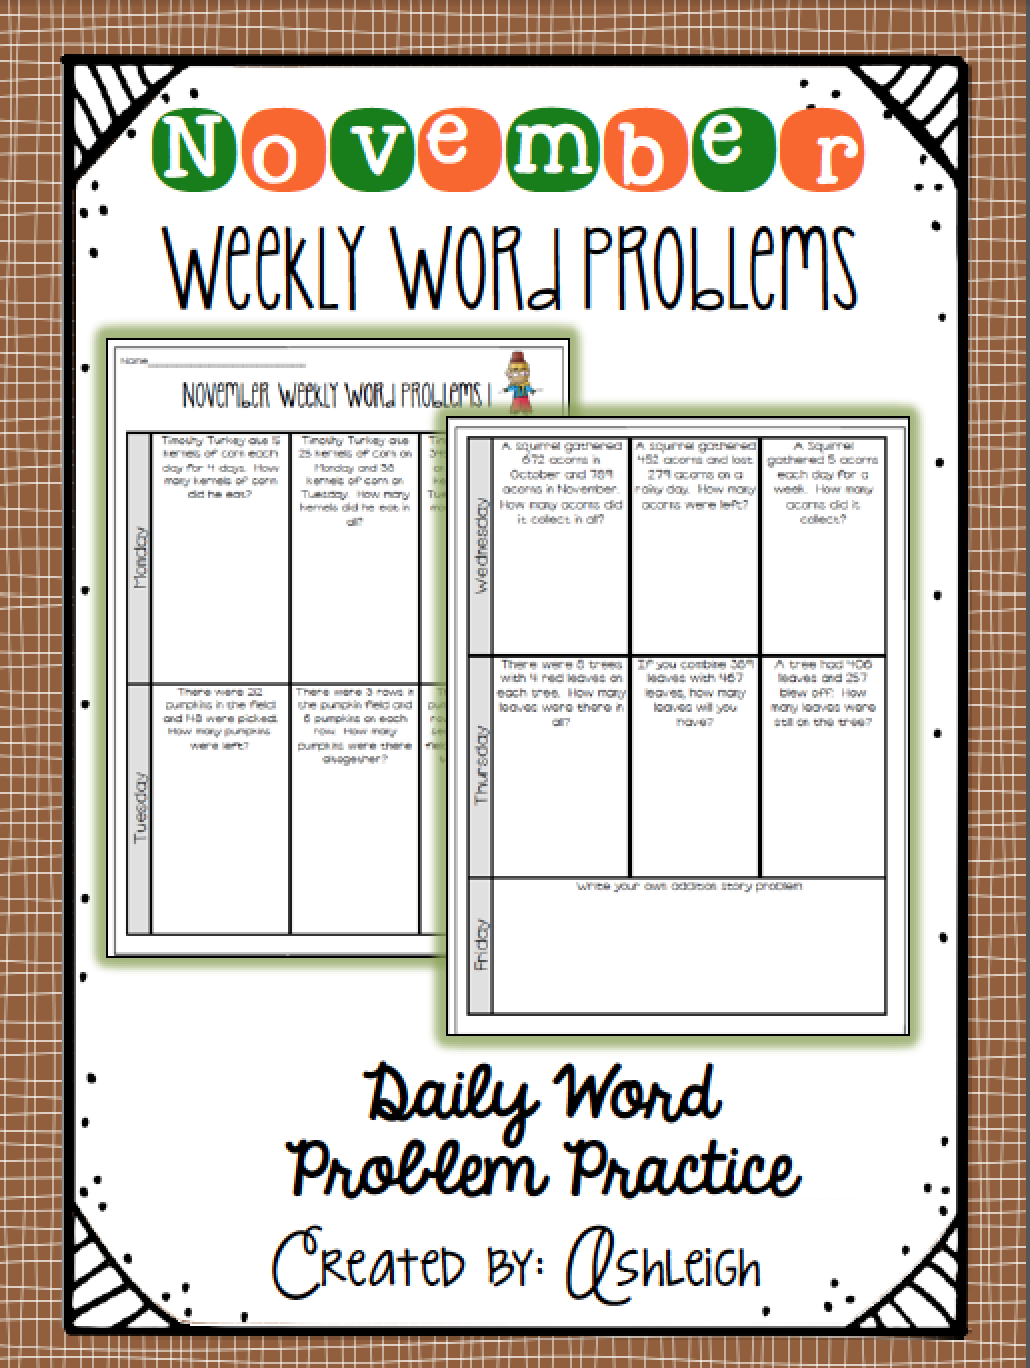 Free Weekly Word Problems For The Entire Month Of November